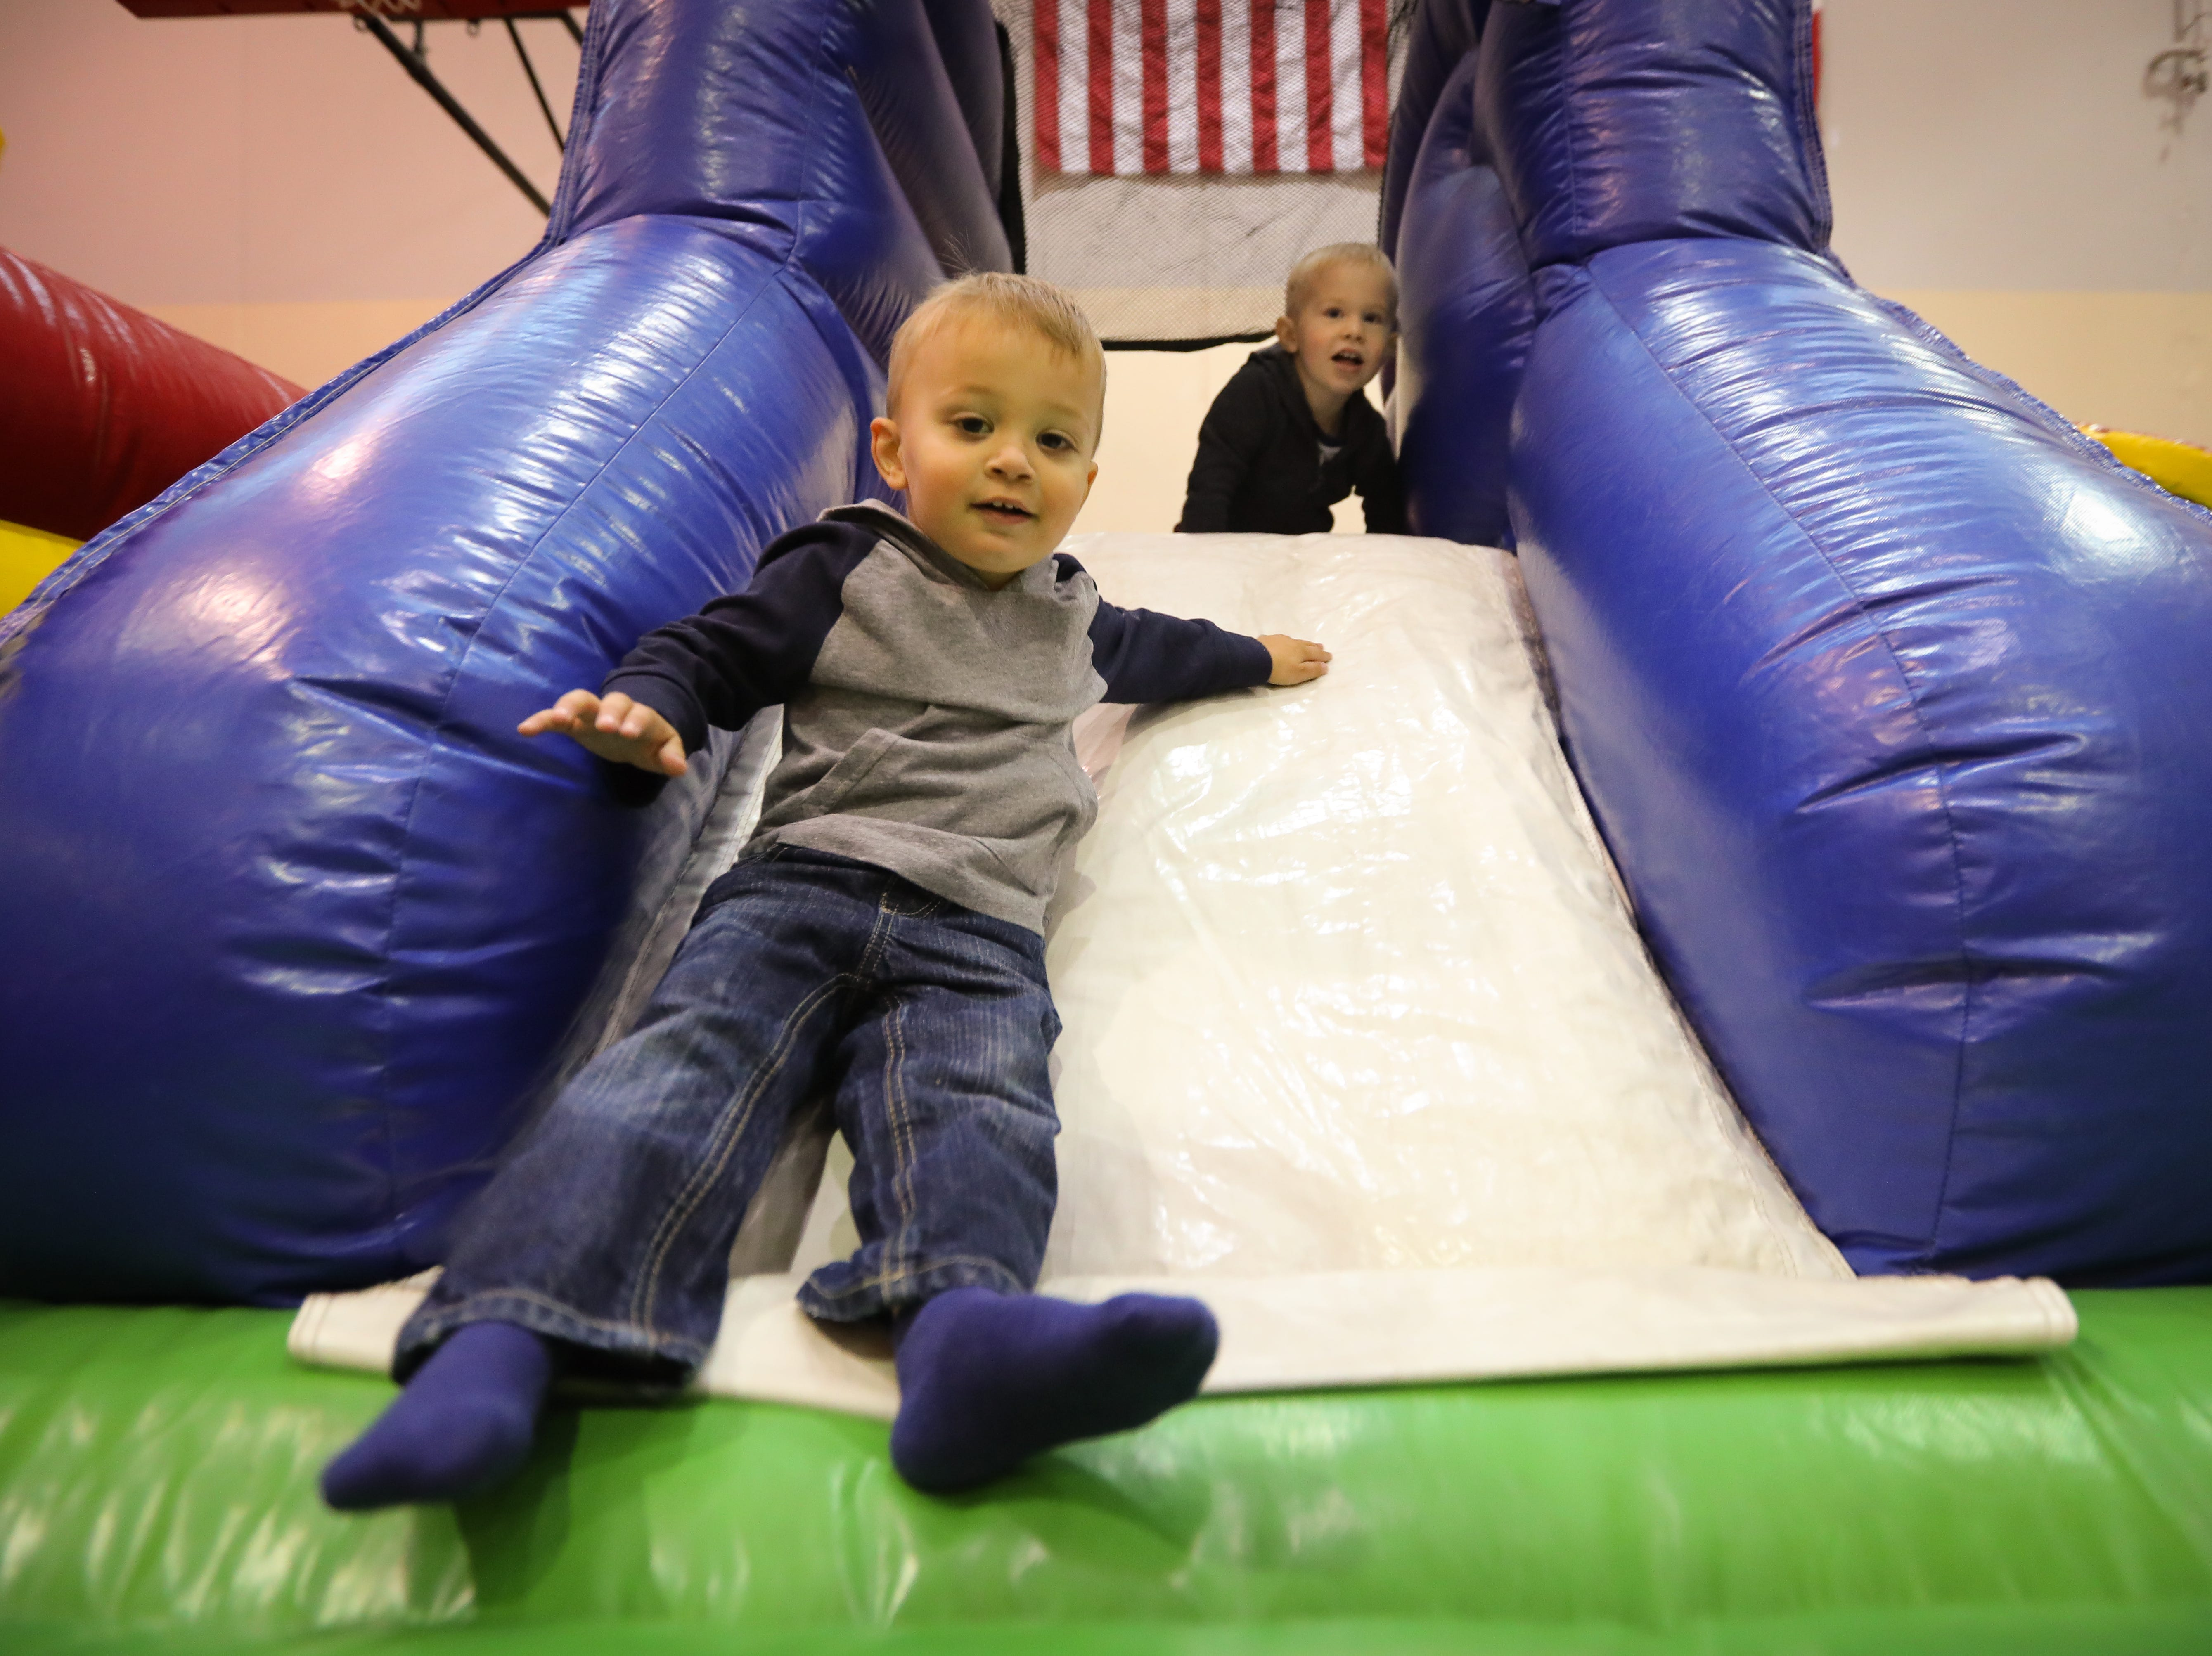 Boden, 2, of West Des Moines participates in the Preschool Palooza at Hillside Elementary School on Saturday, Nov. 3, 2018 in Des Moines, Iowa.